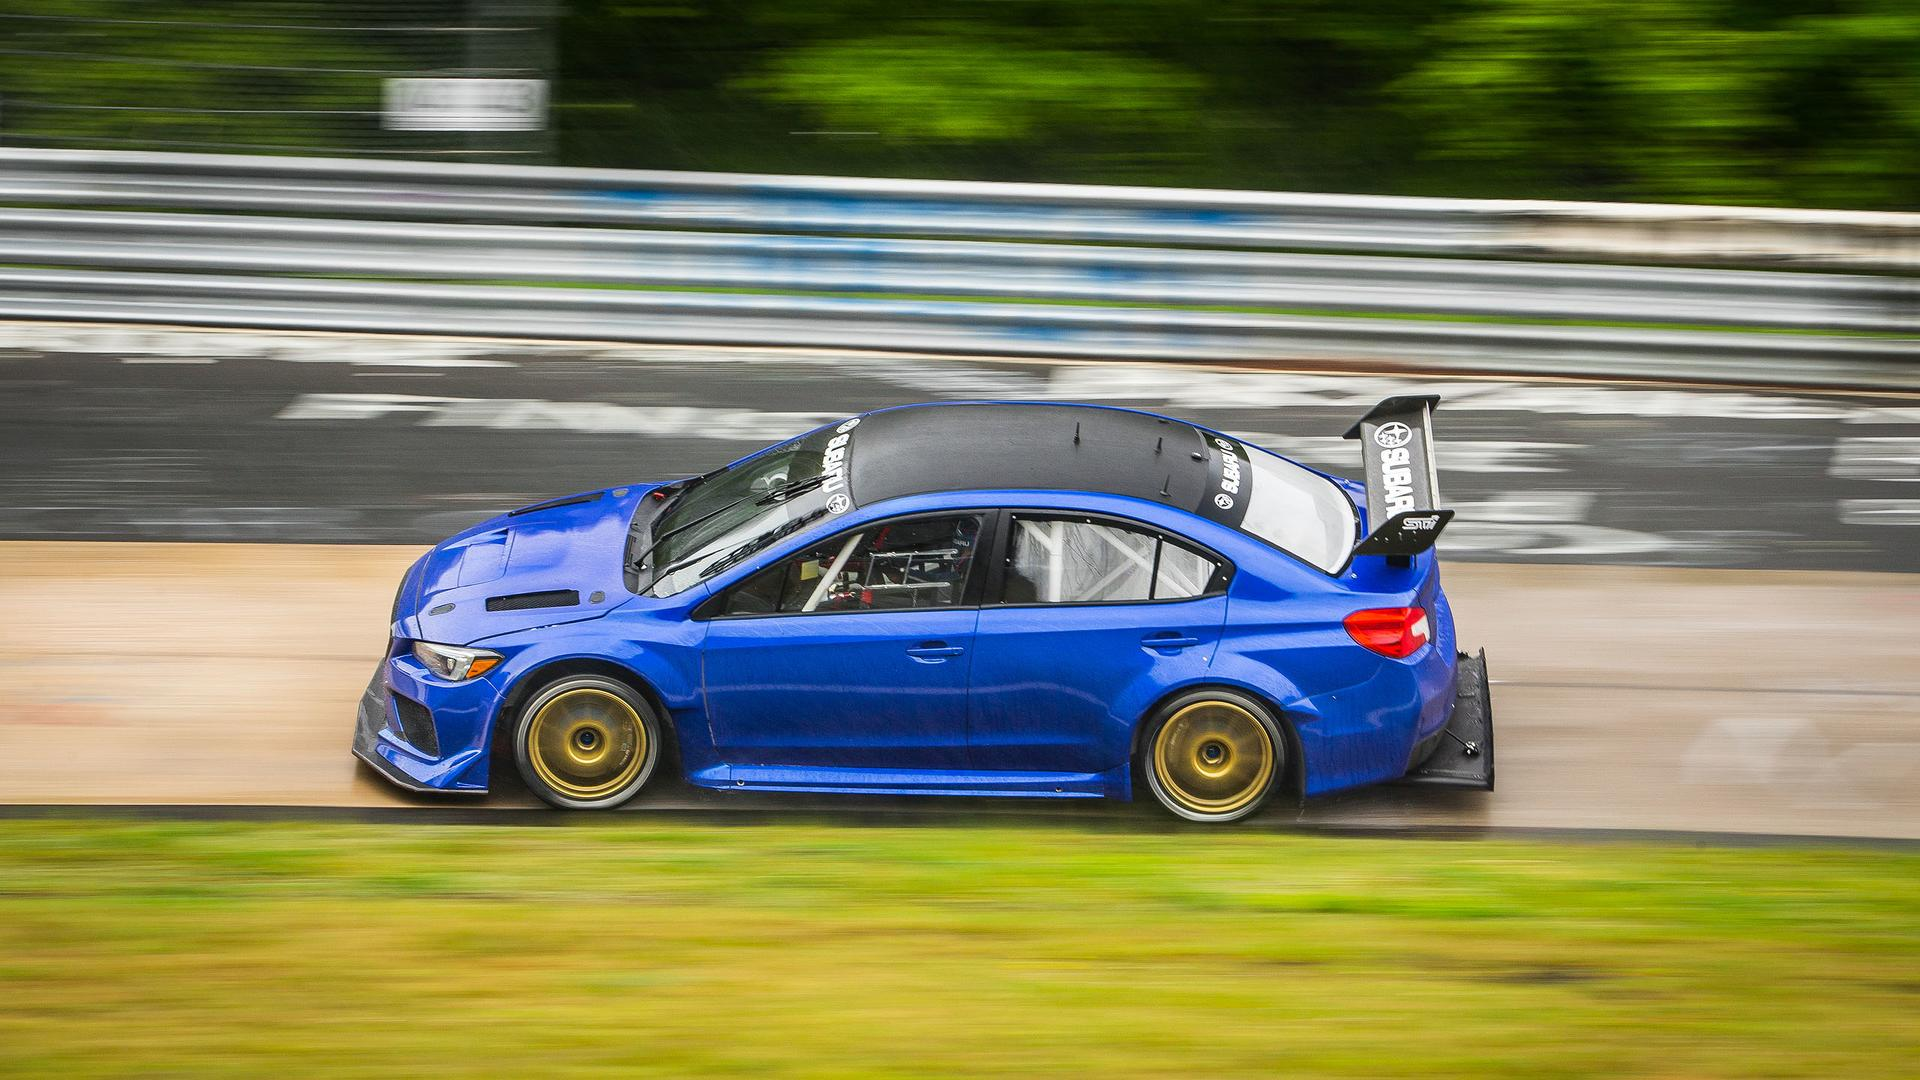 subaru-wrx-sti-type-ra-at-the-nurburgring.jpg